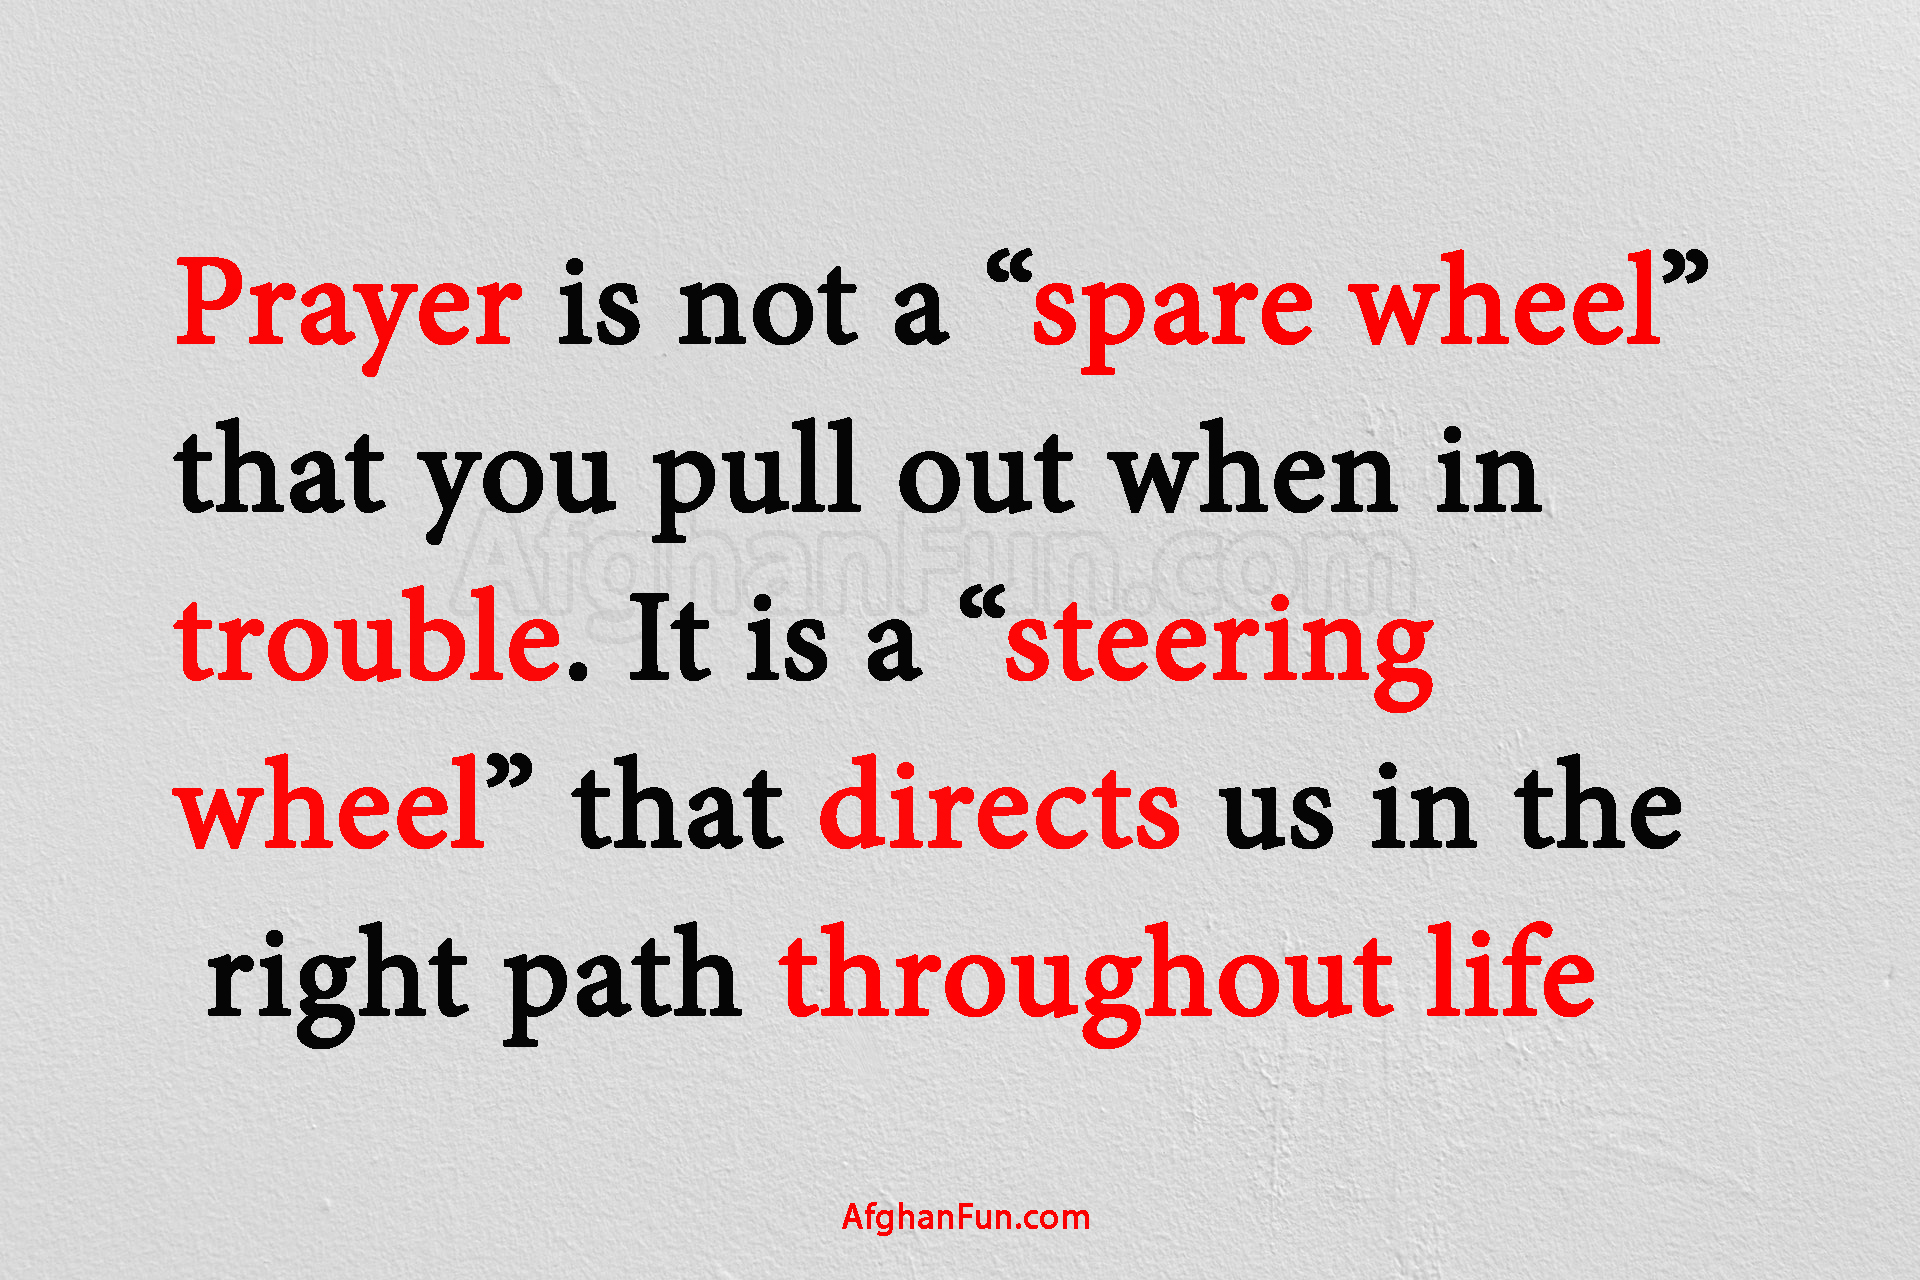 Prayer is not a spare wheel